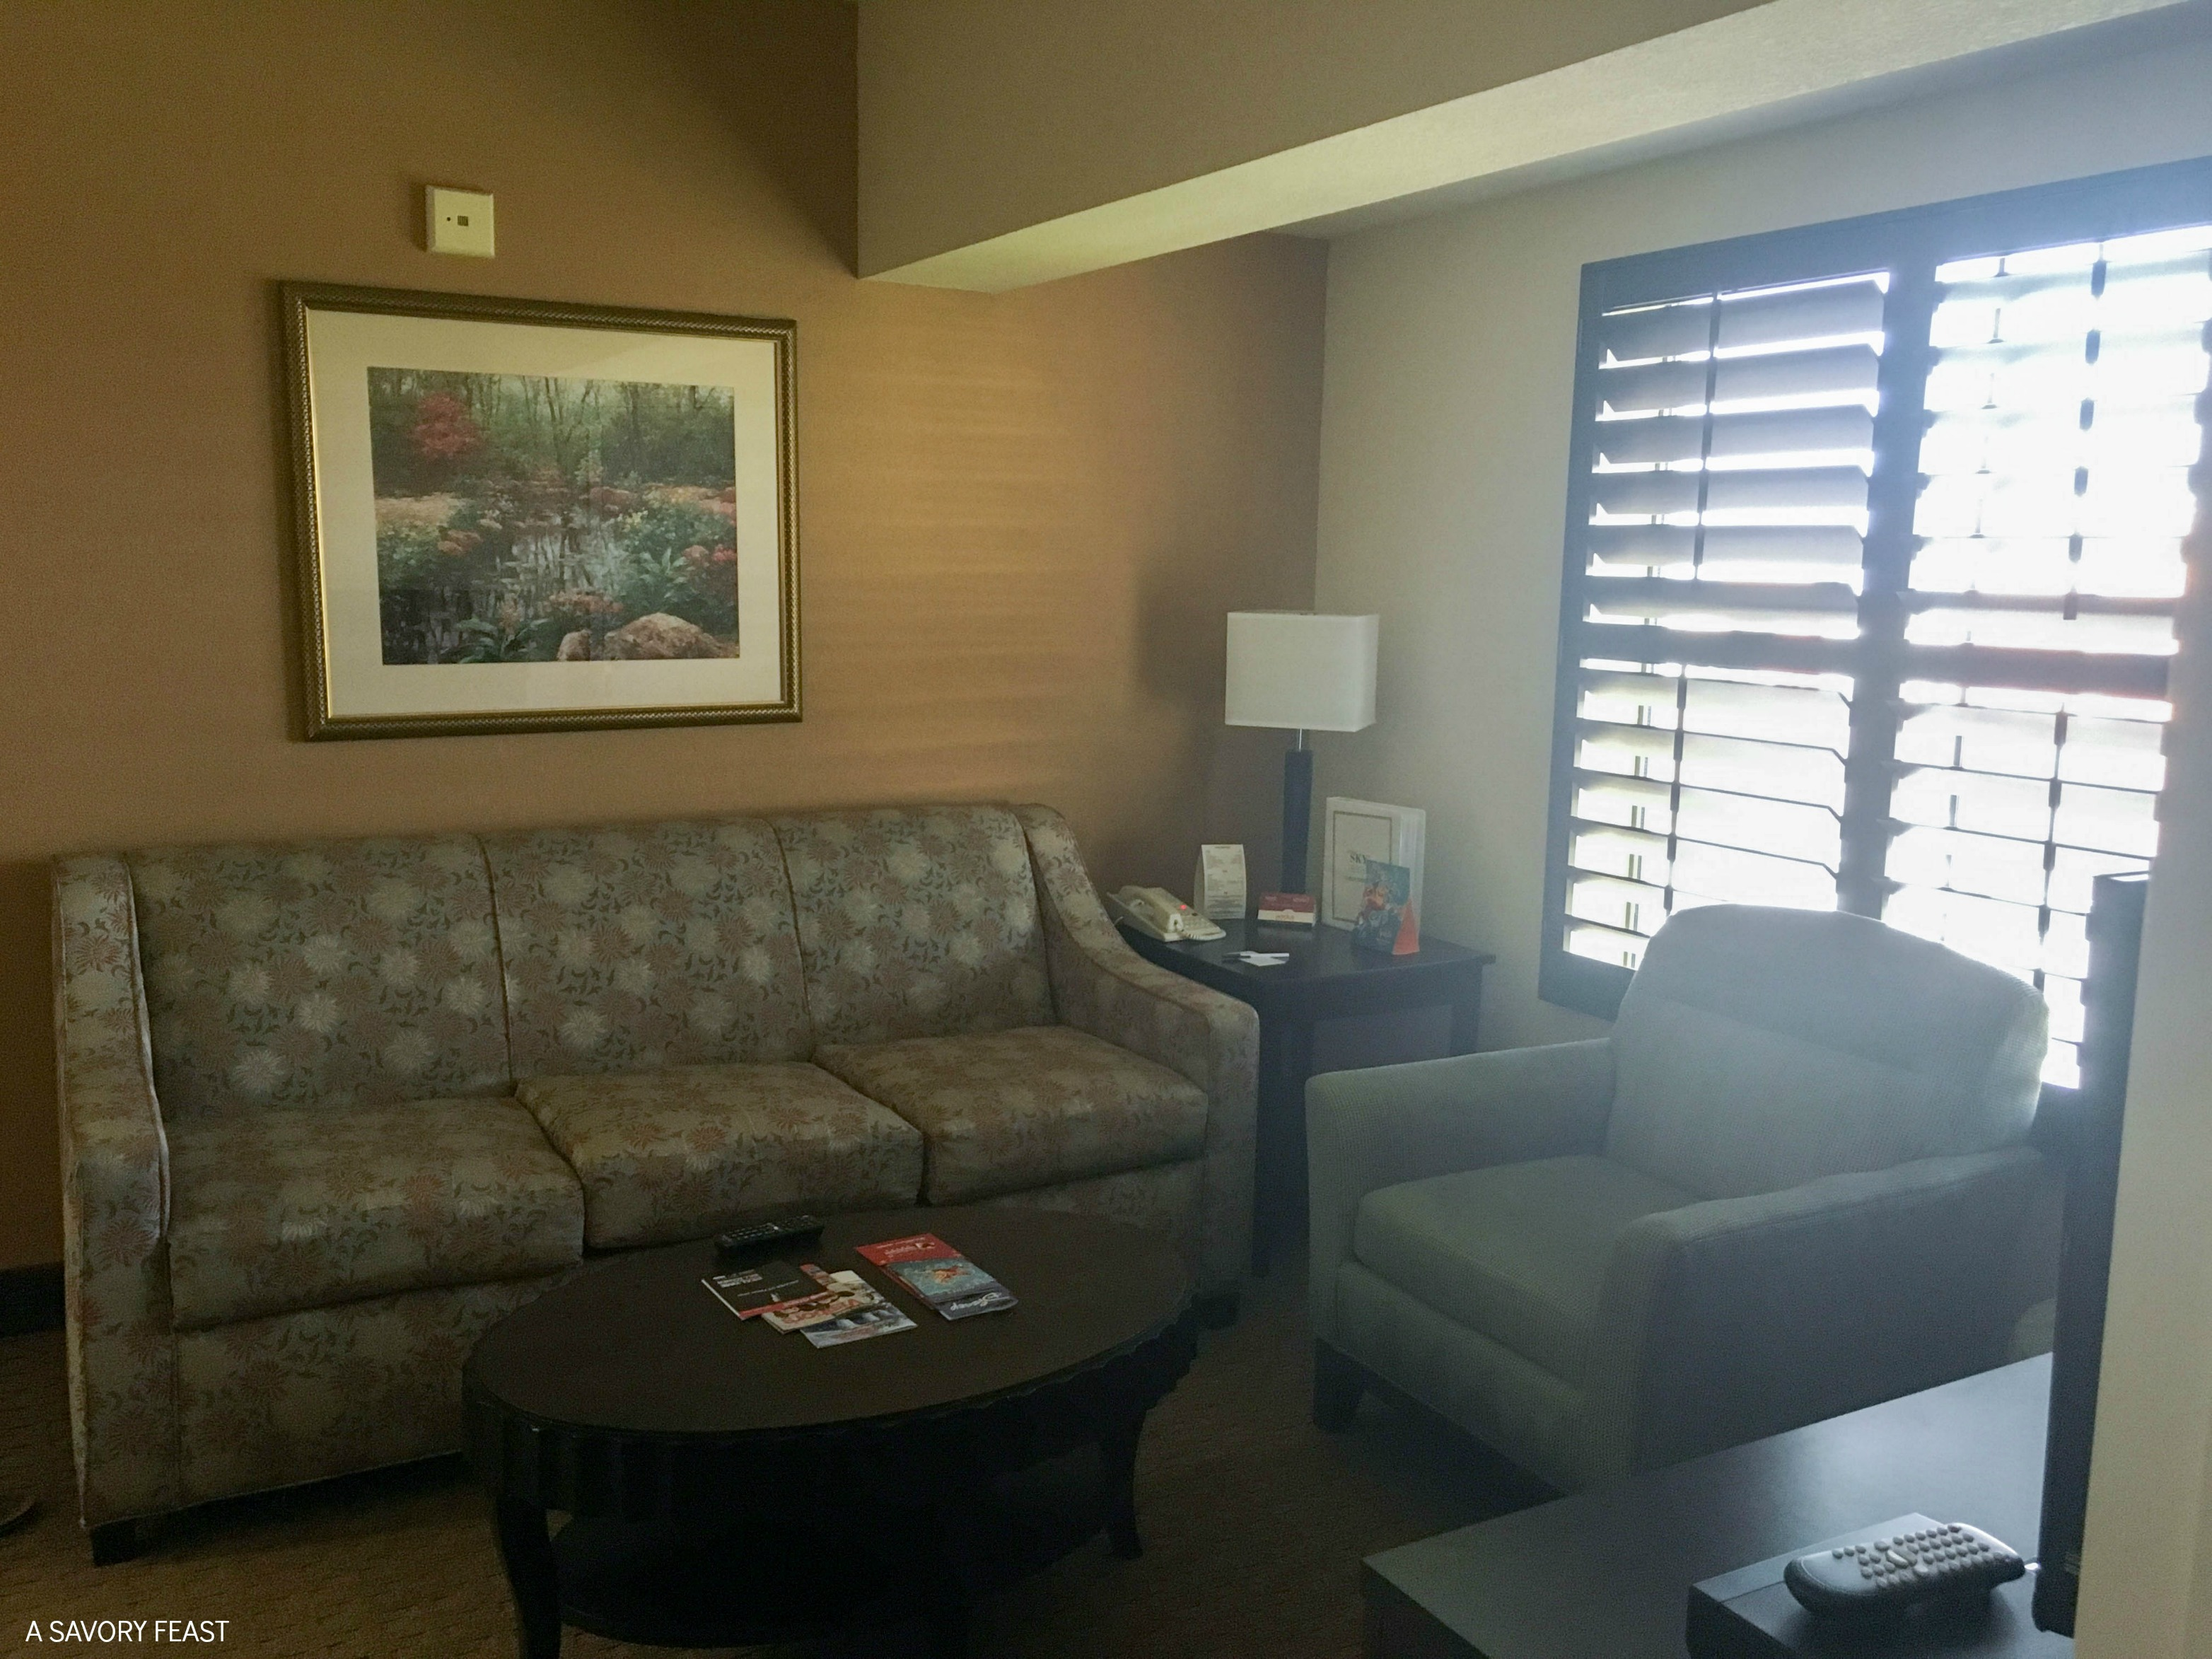 Orlando Weekend Getaway at StaySky Suites // Stay close to all the attractions off of International Drive! Plus a few ideas for non-Disney things to do.